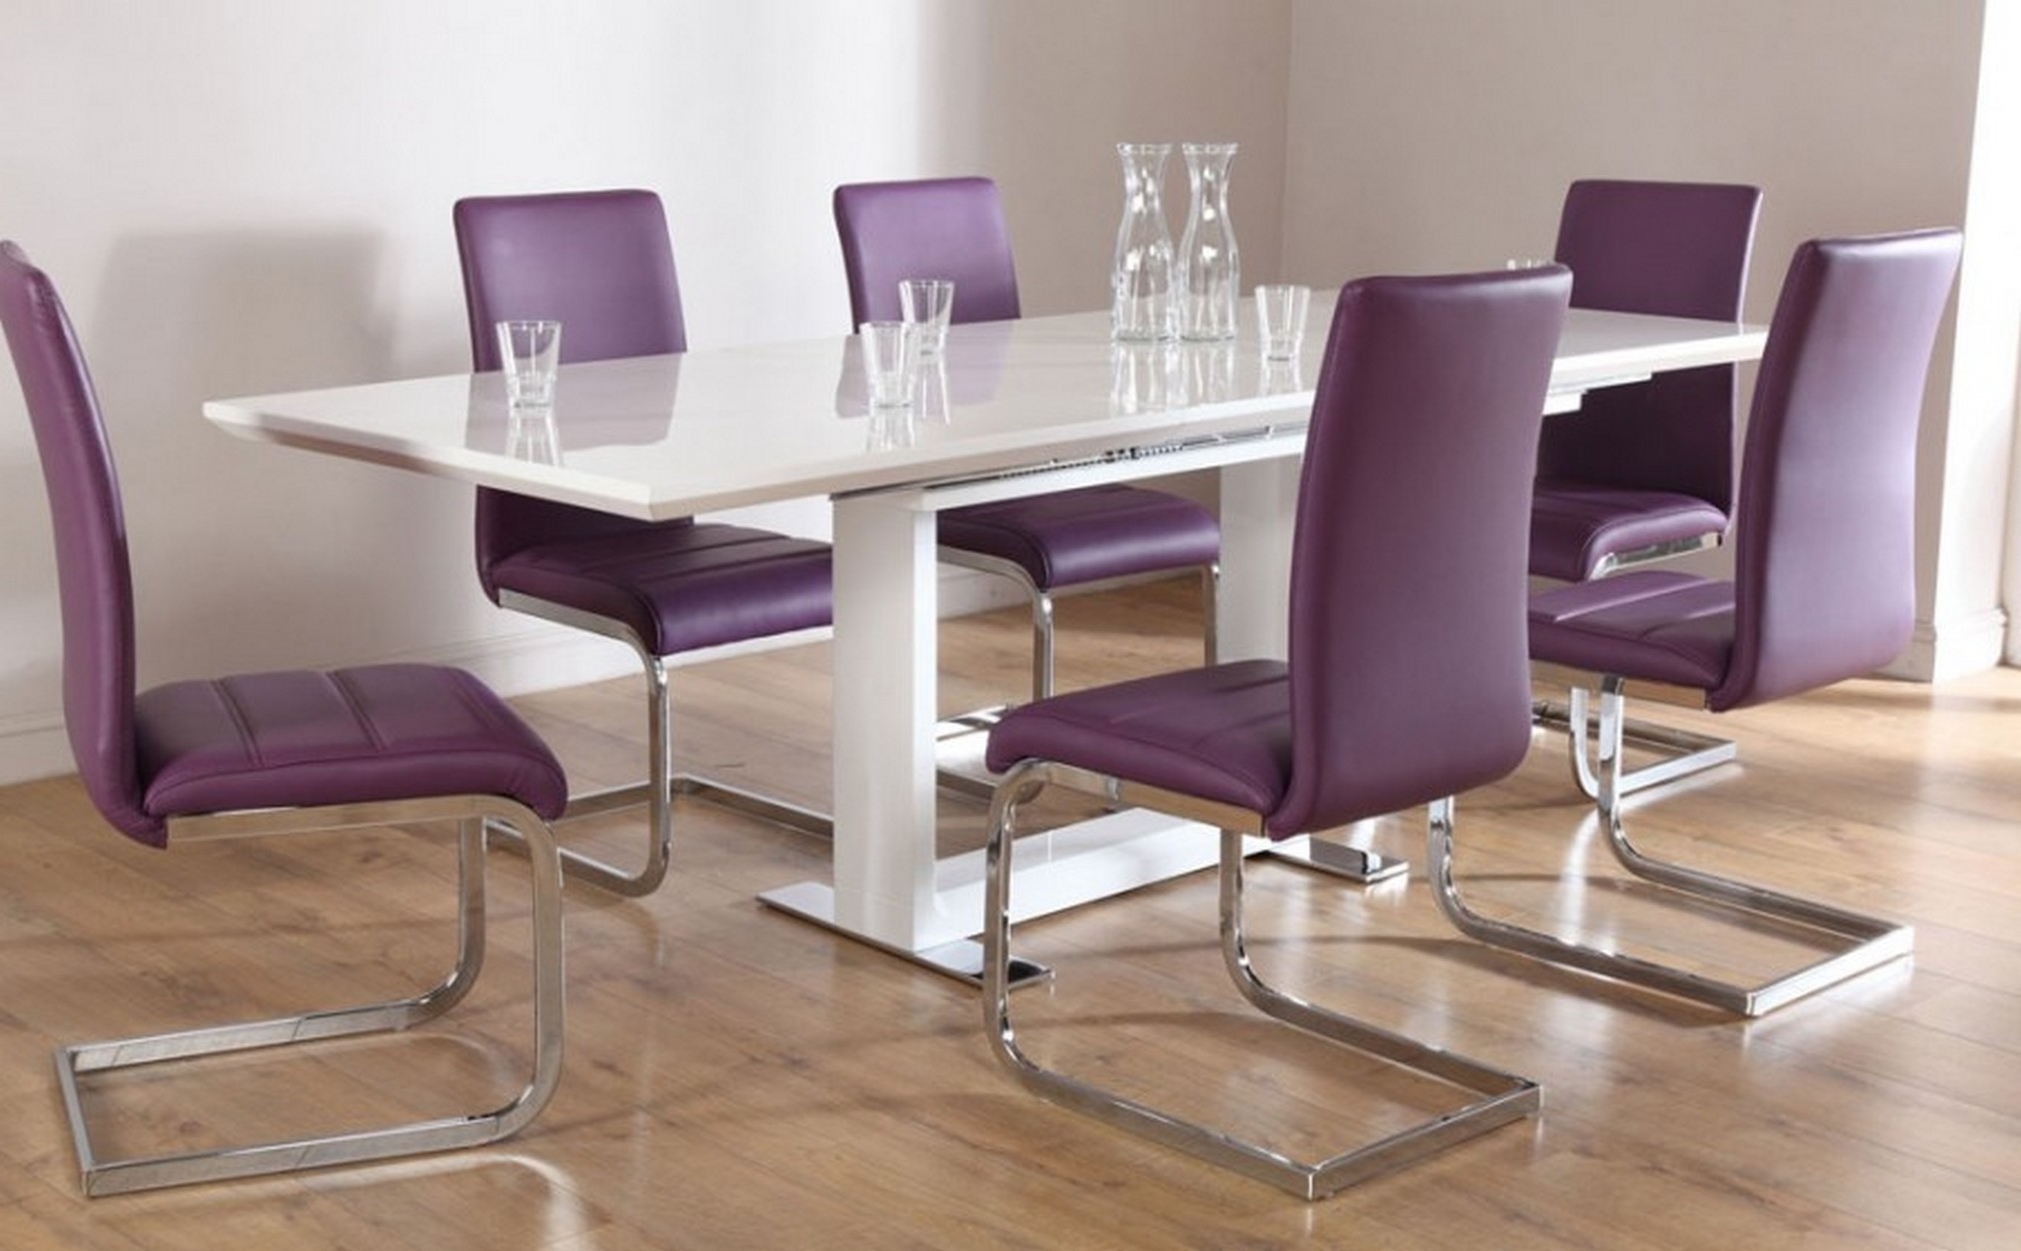 Most Recent Round Acrylic Dining Tables In Outstanding Small Dining Room Design With Rectangle White Acrylic (View 13 of 25)